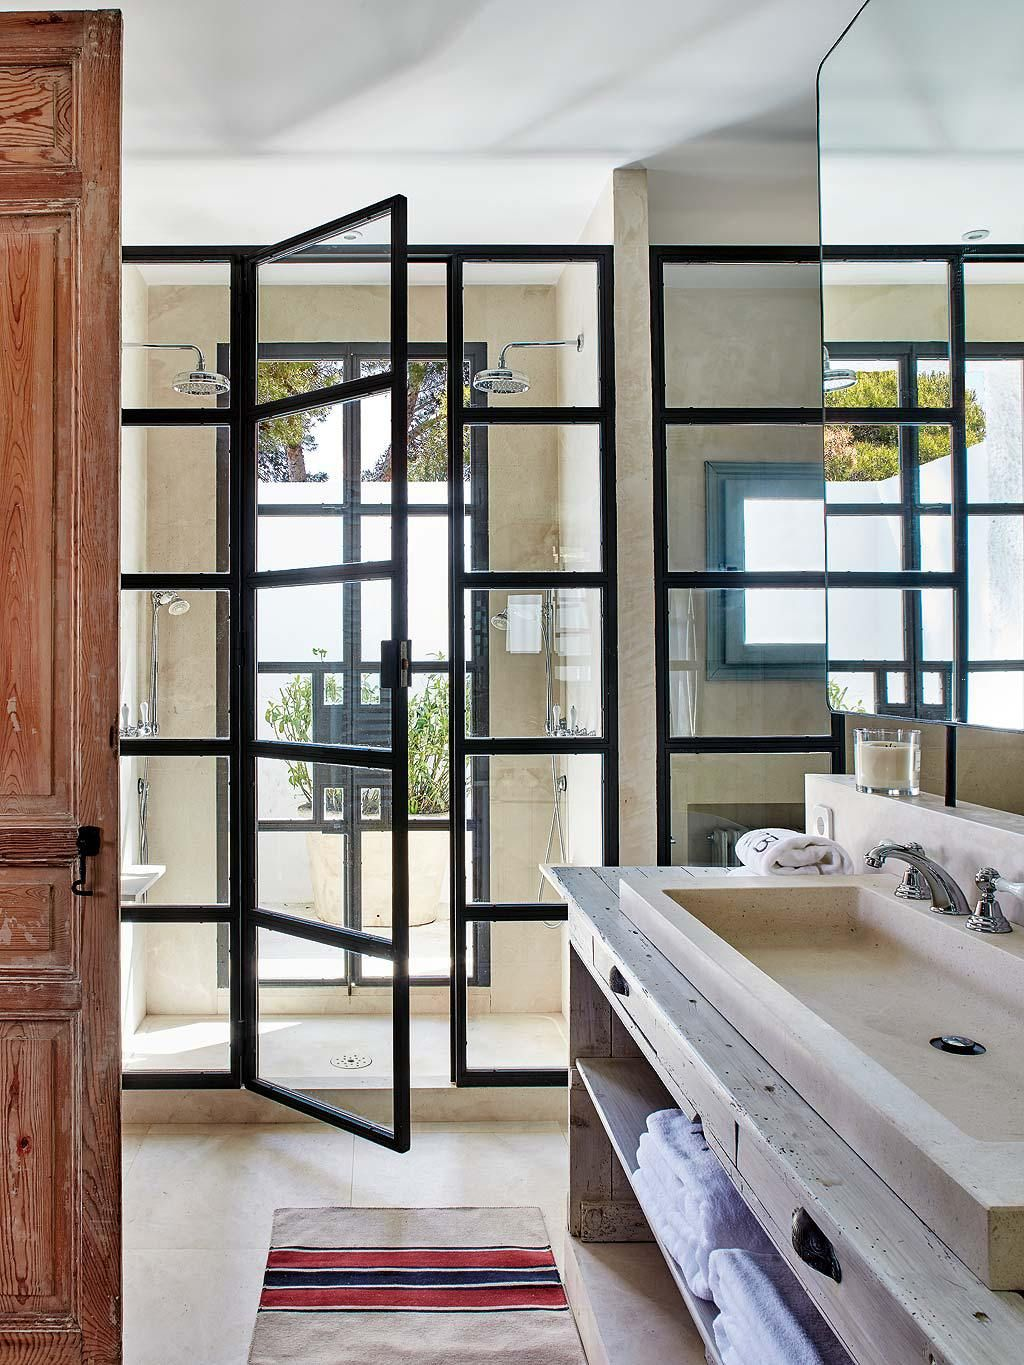 Une maison andalouse      l allure gaucho   PLANETE DECO a homes world     house in Cadiz  Andalusia   interior designer Luisa Olazabal